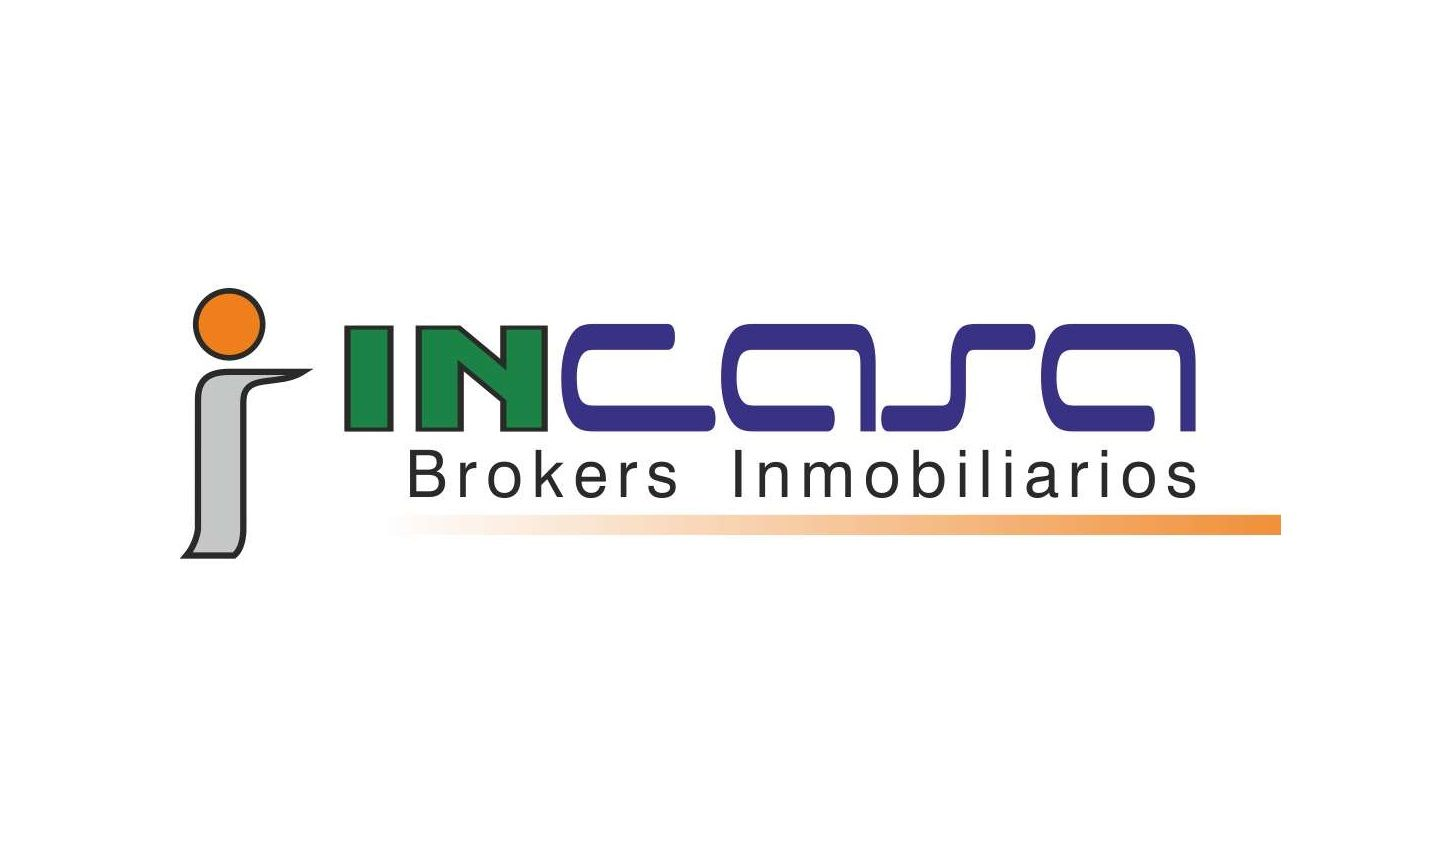 Logo de  Incasa Brokers